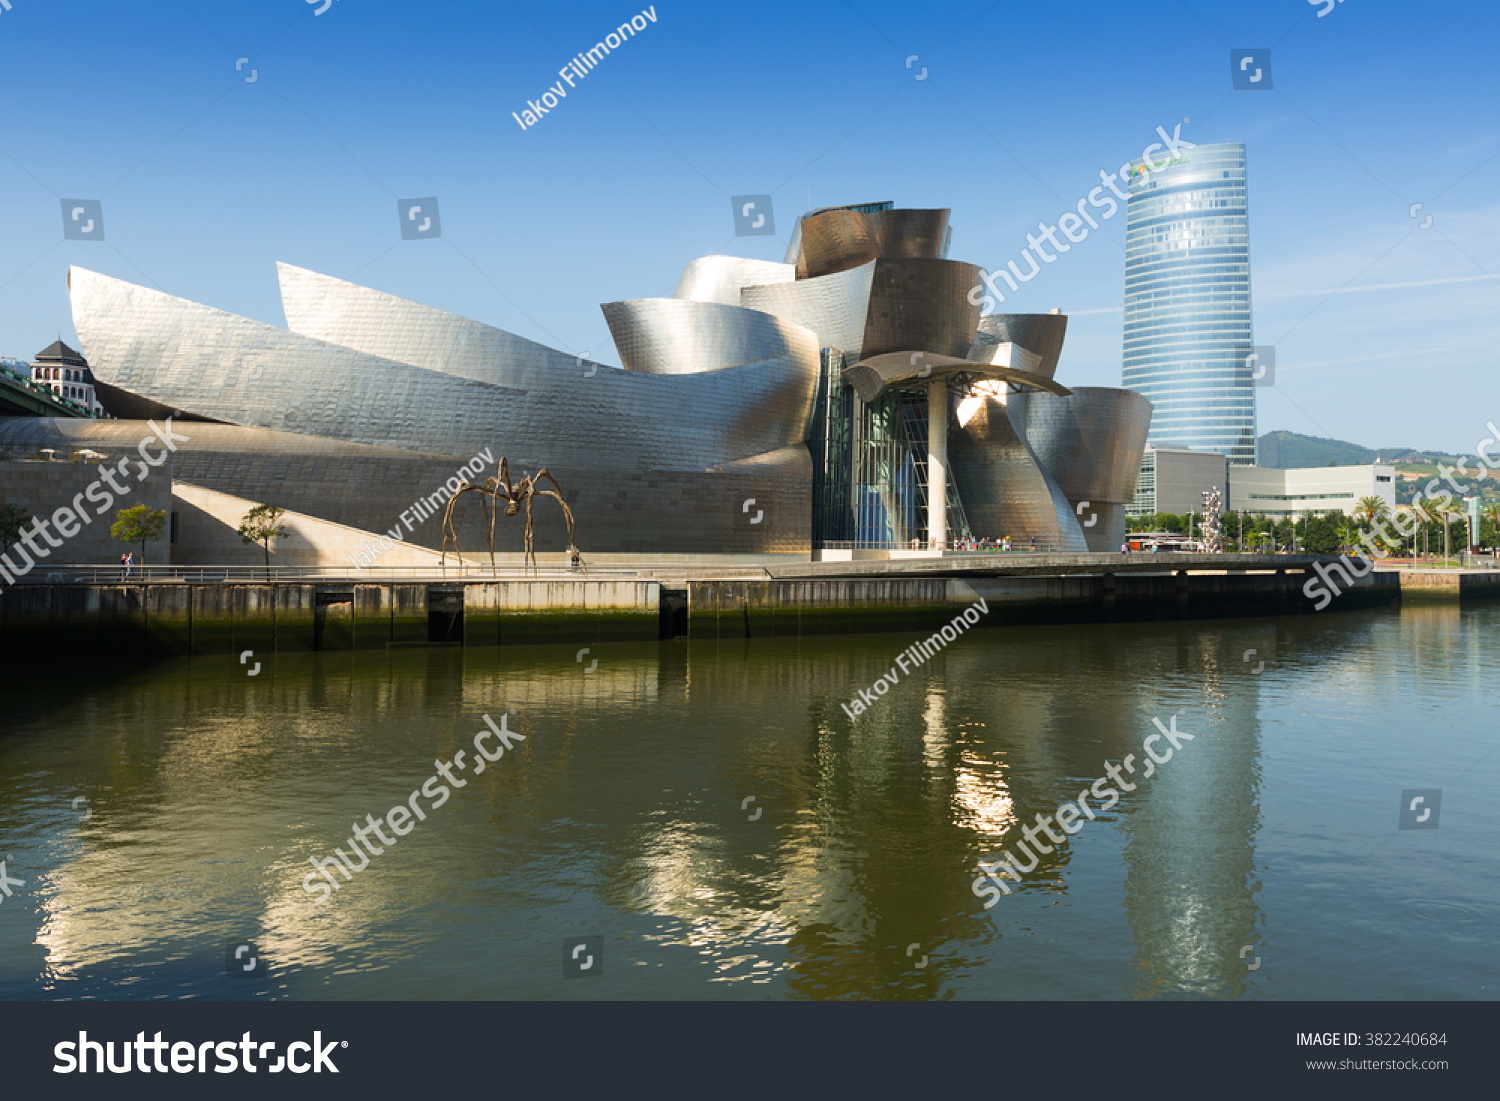 bilbao spain july 4 2015 guggenheim museum bilbao is museum of modern and contemporary